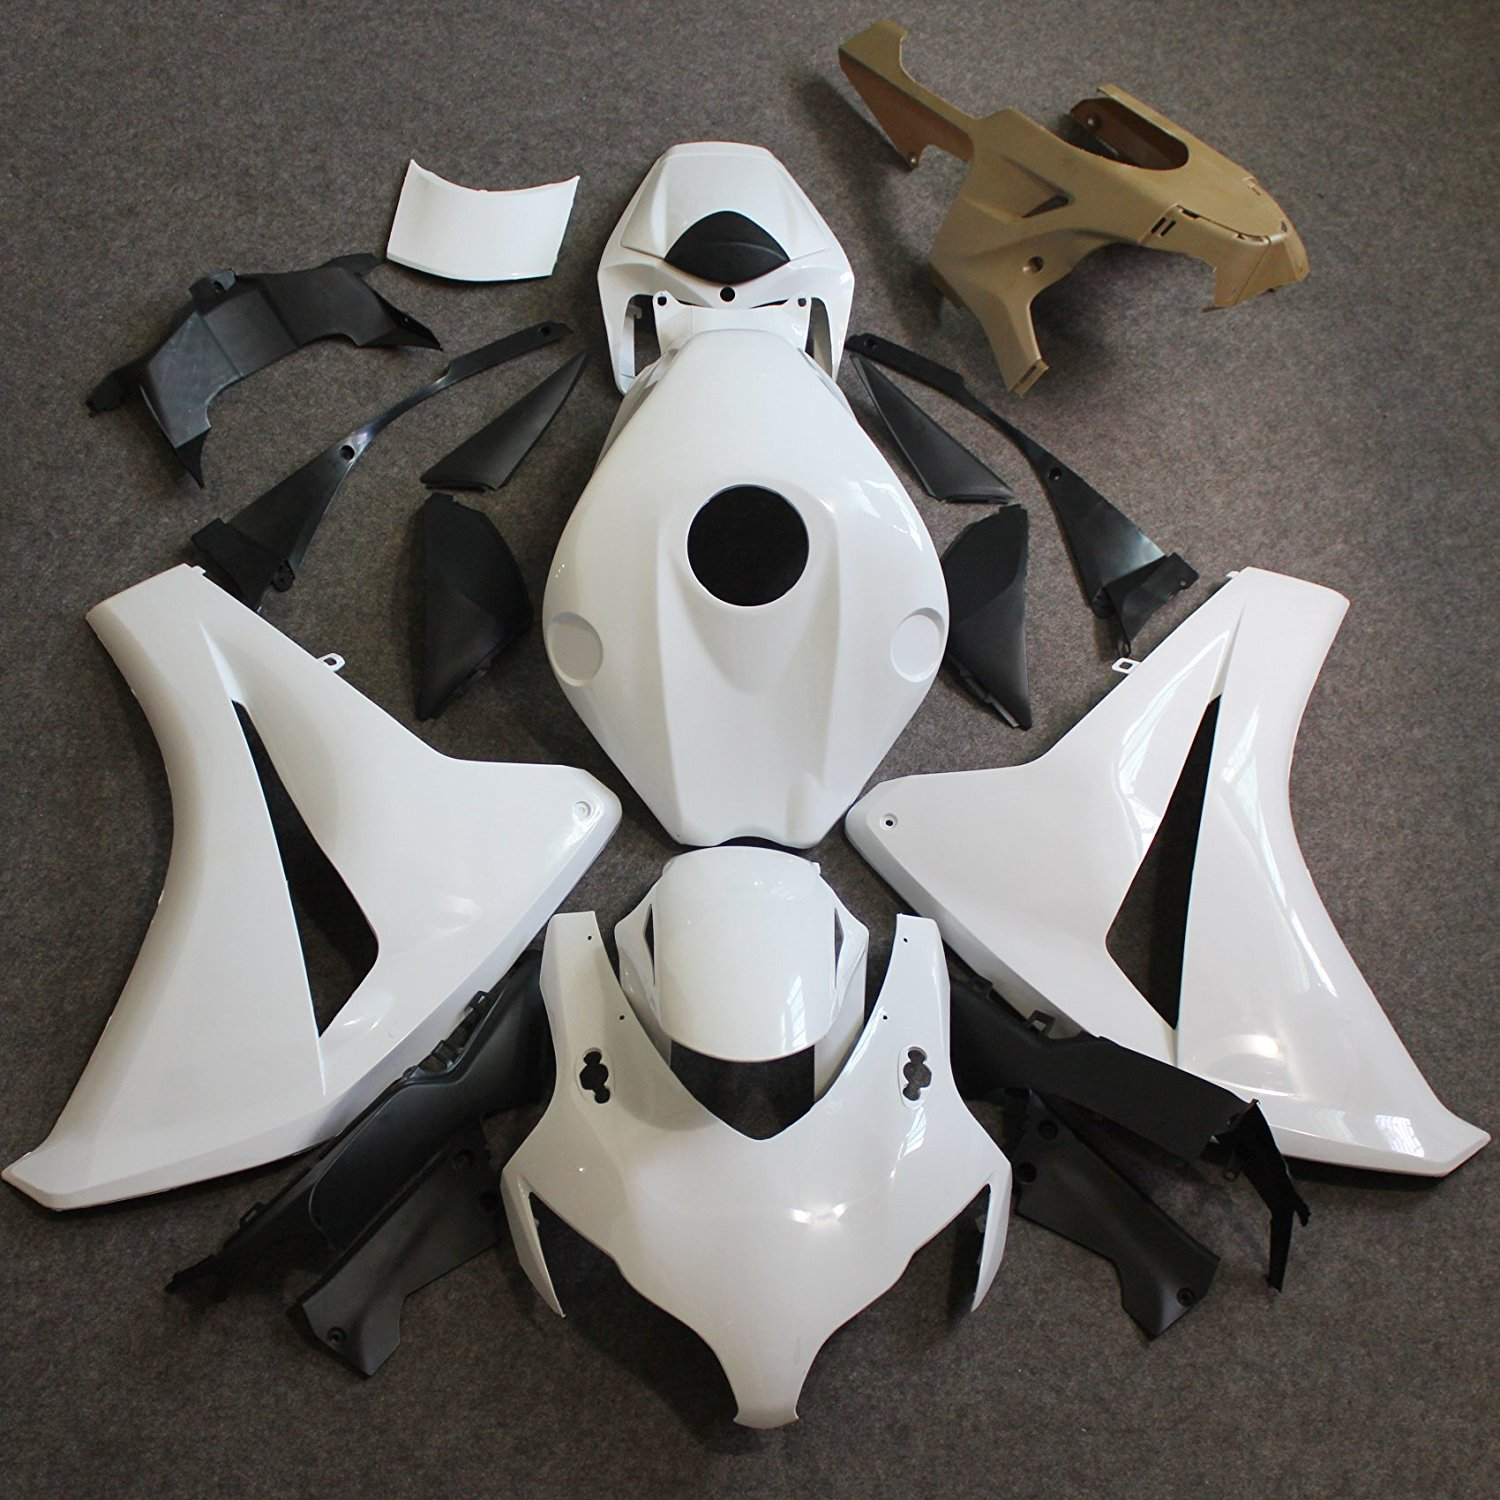 CBR 1000RR 08 09 Motorcycle Unpainted Injection Full Fairing for Honda CBR 1000 RR CBR1000RR 2008 2009 Fairings Kit Bodywork arashi motorcycle radiator grille protective cover grill guard protector for 2008 2009 2010 2011 honda cbr1000rr cbr 1000 rr